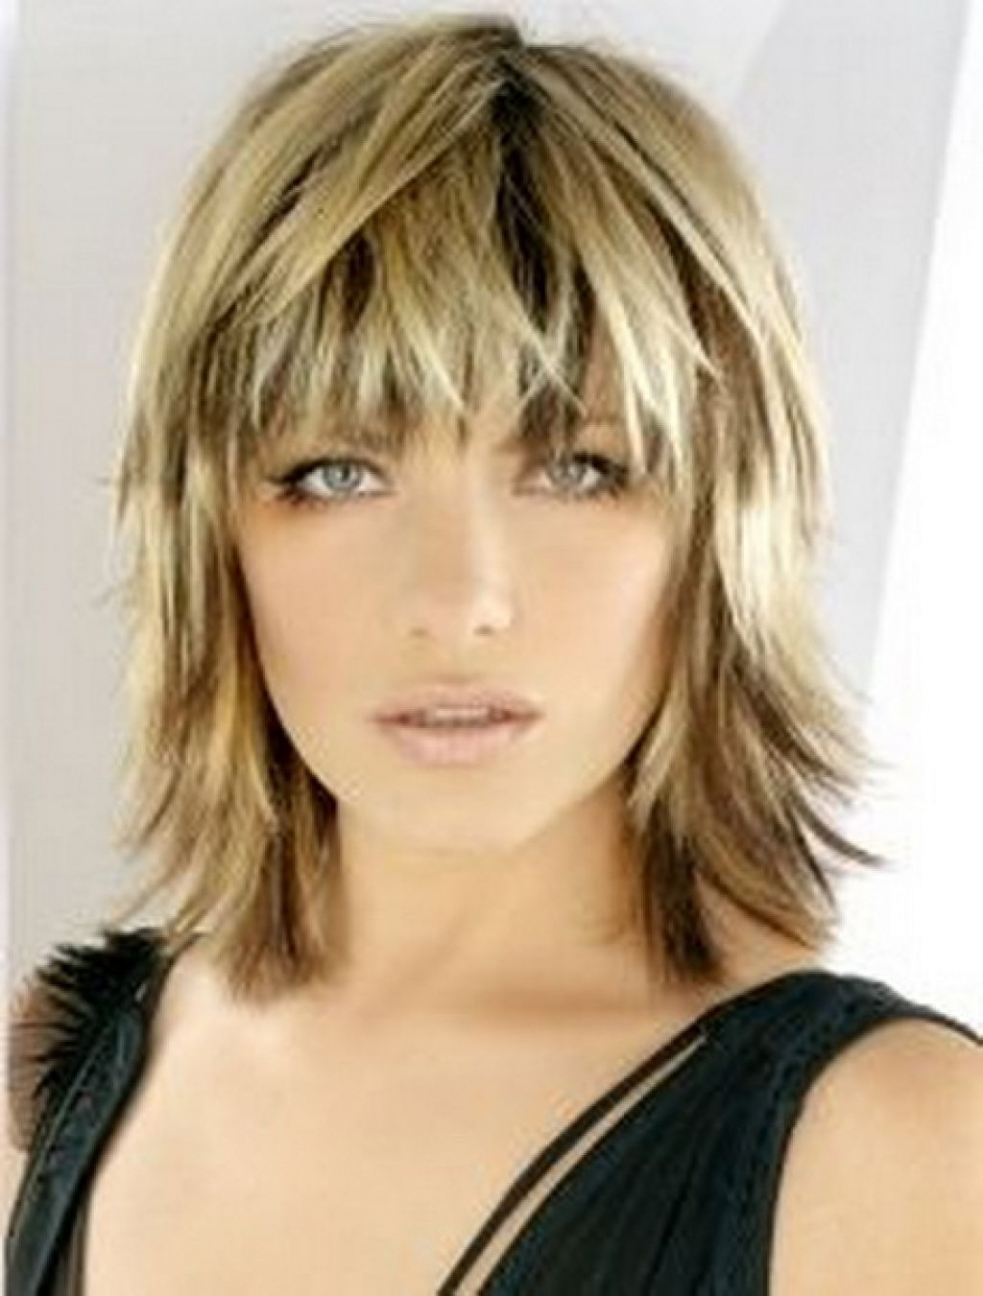 Famous Wispy Medium Haircuts With Medium Wispy Hairstyles – Hairstyle For Women & Man – Medium (View 8 of 20)